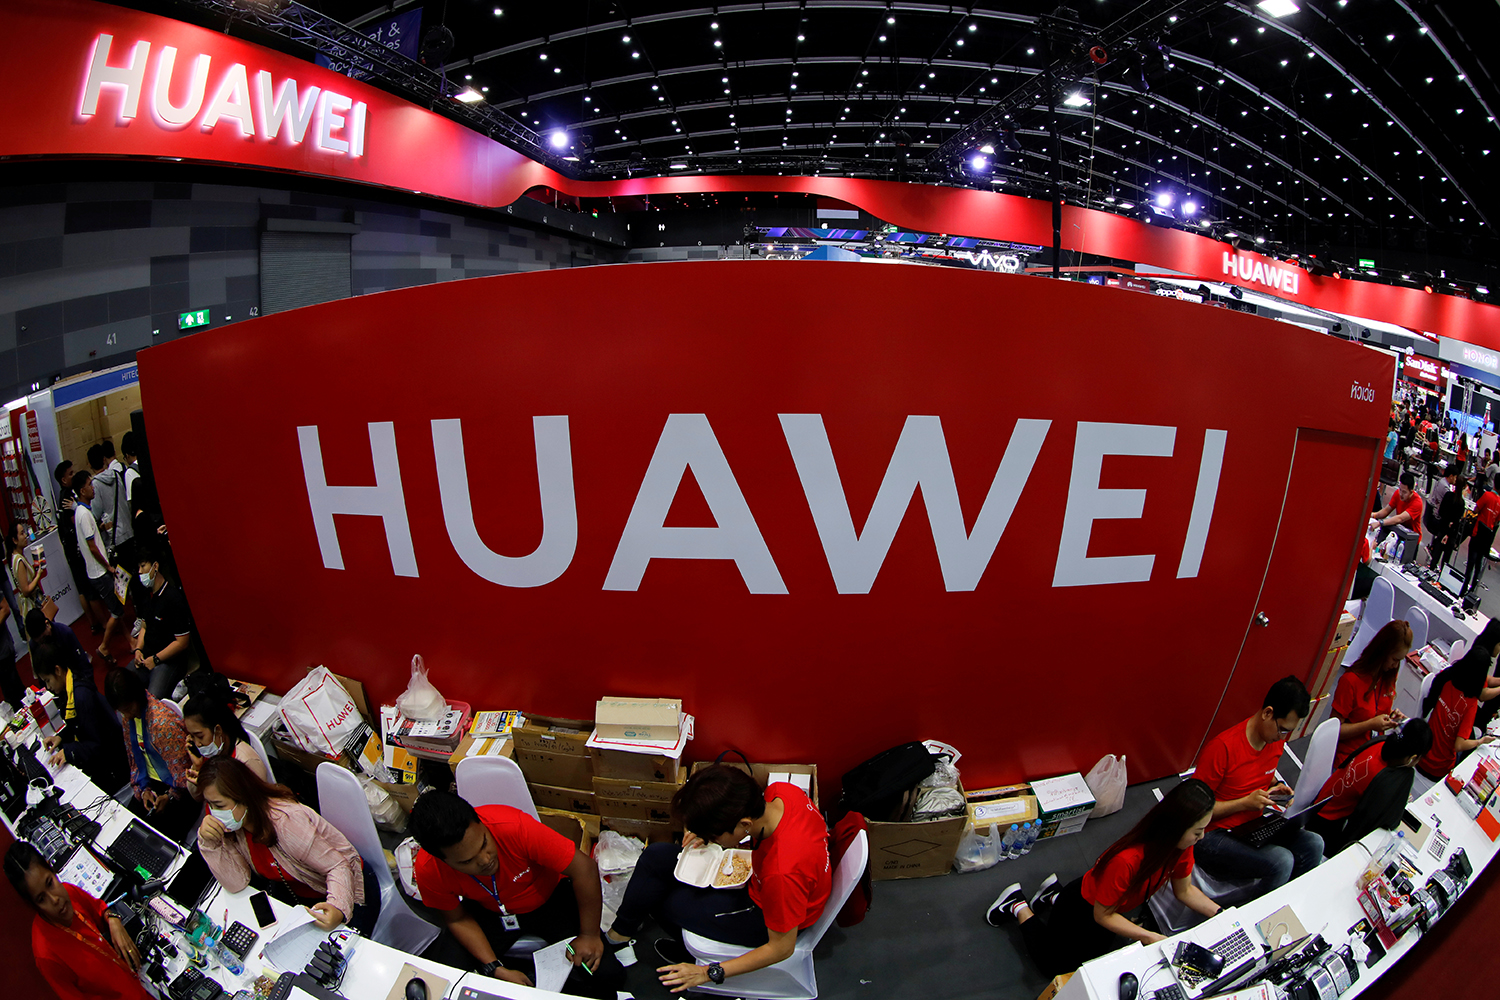 Workers sit at the Huawei stand at Thailand Mobile Expo at Bitec Bangna. The event ended on Sunday. (Reuters photo)